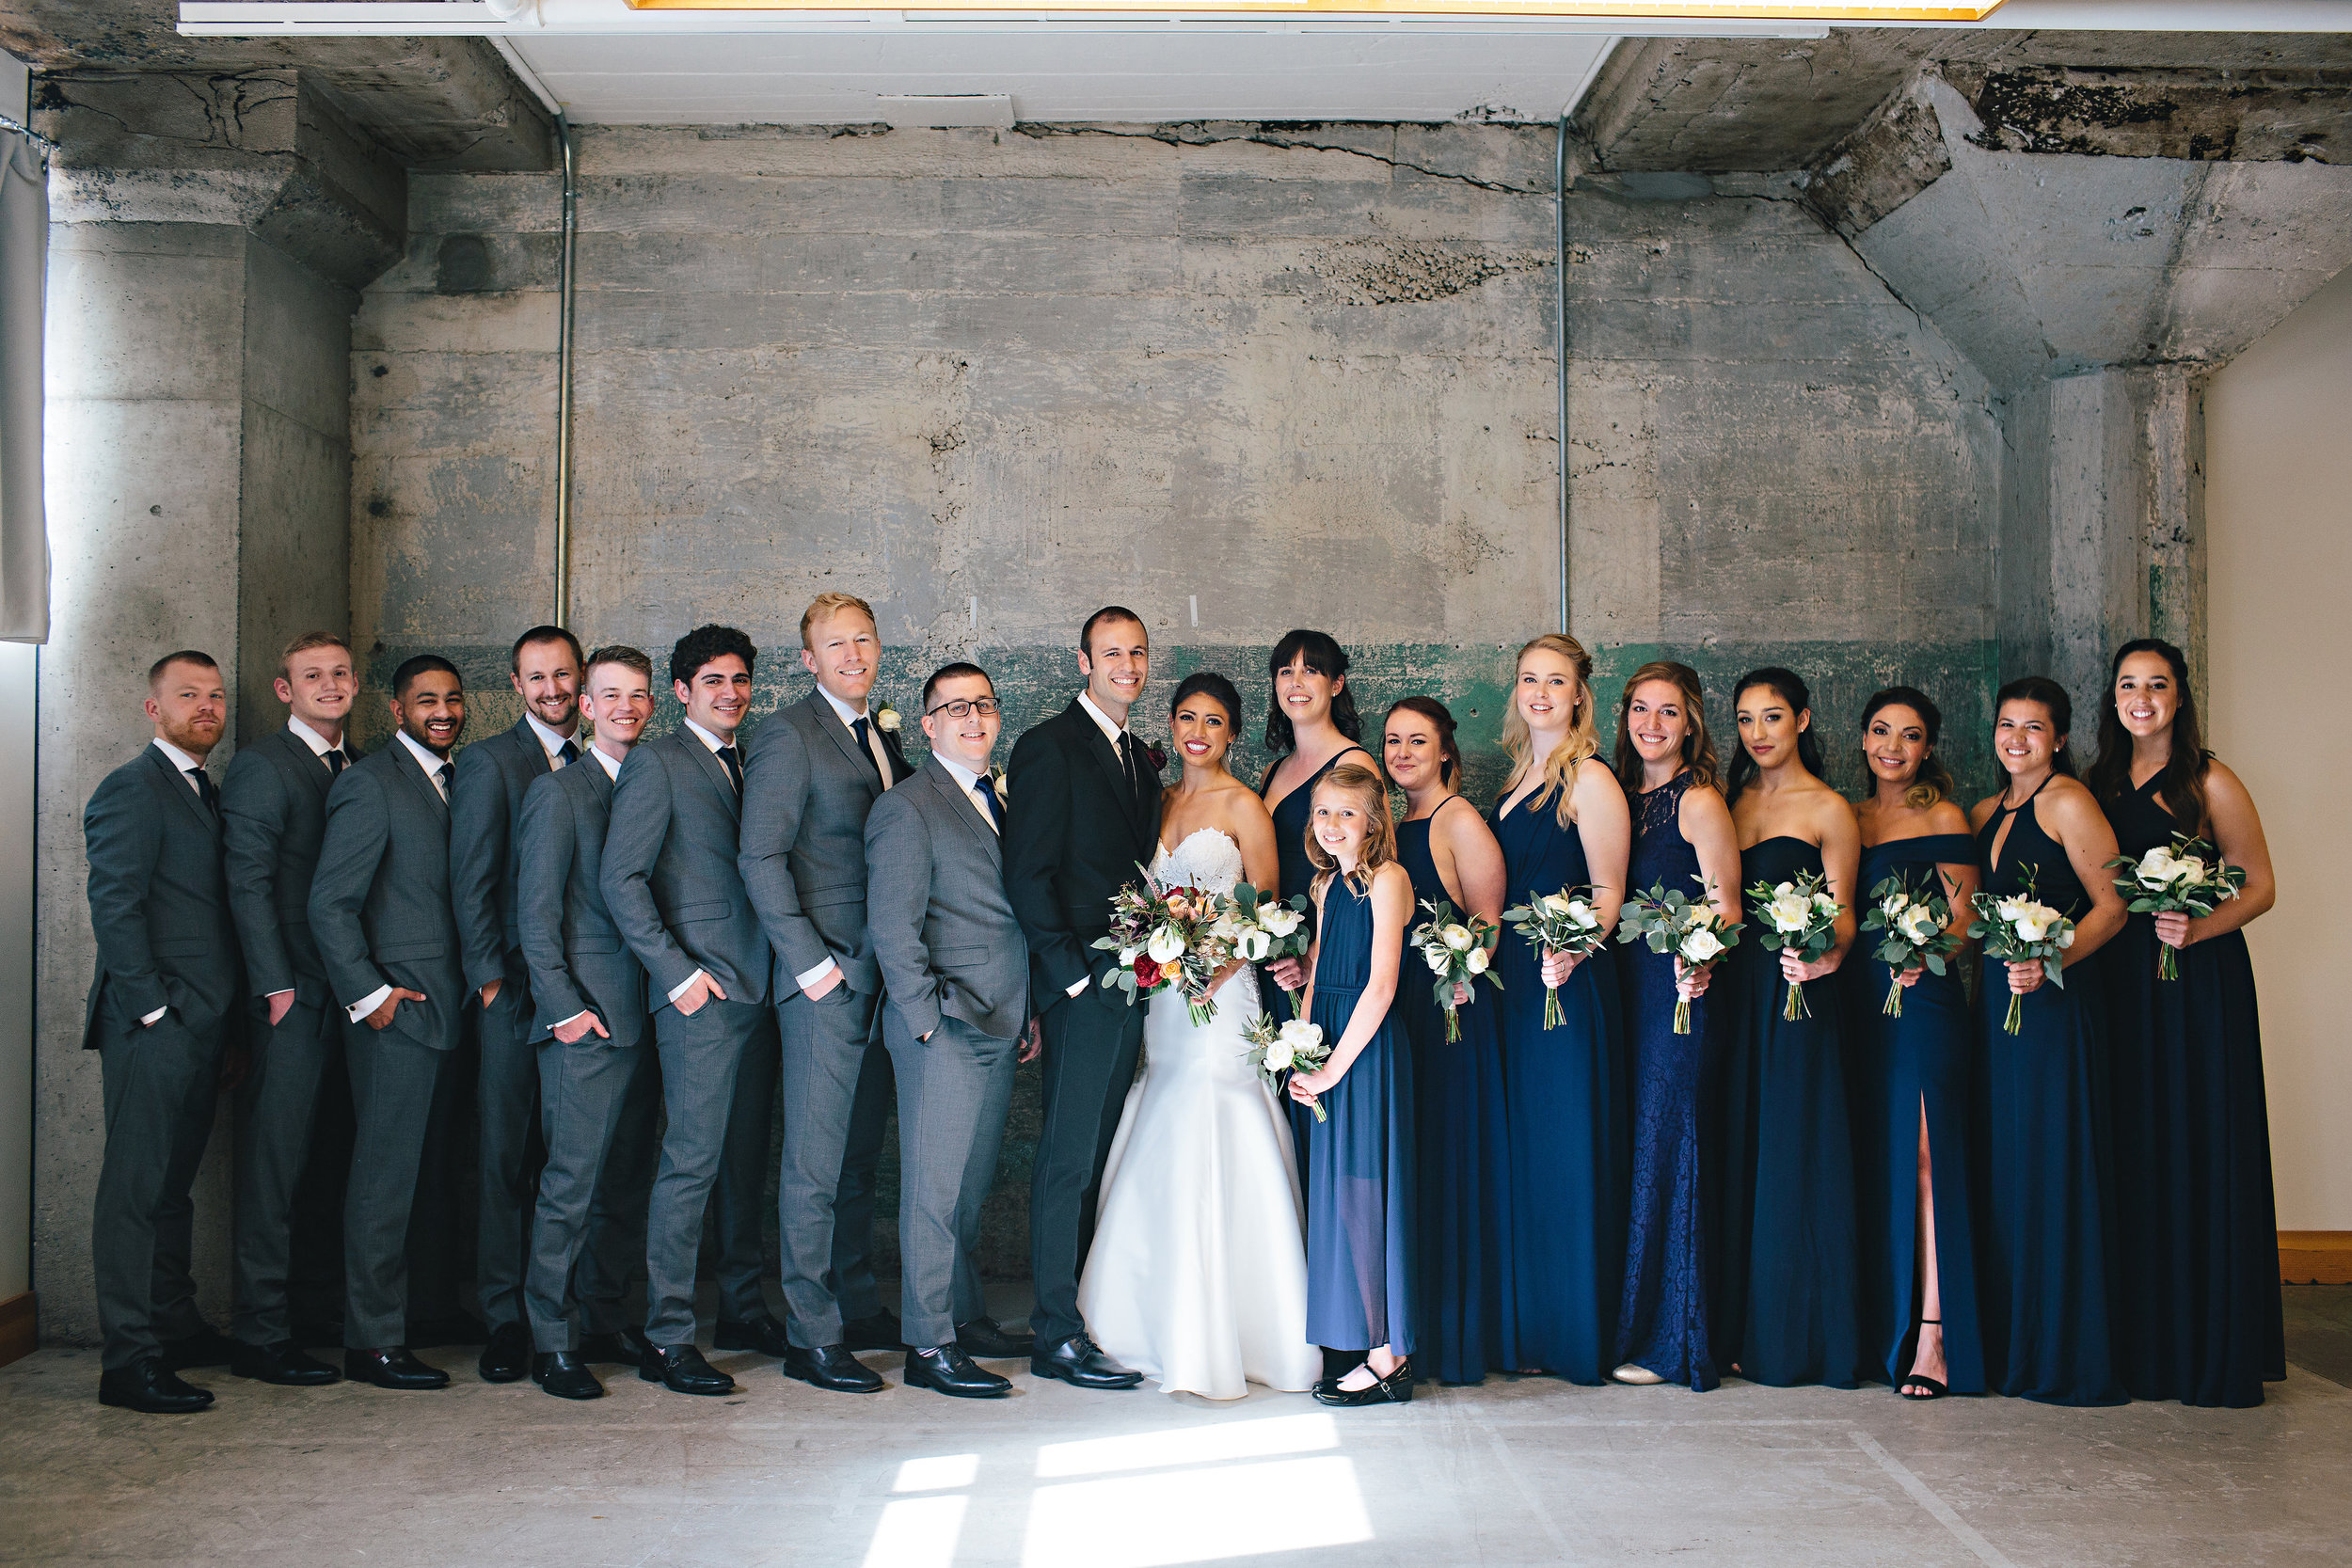 Roshan, Josh, and their bridal party at Leftbank Annex.